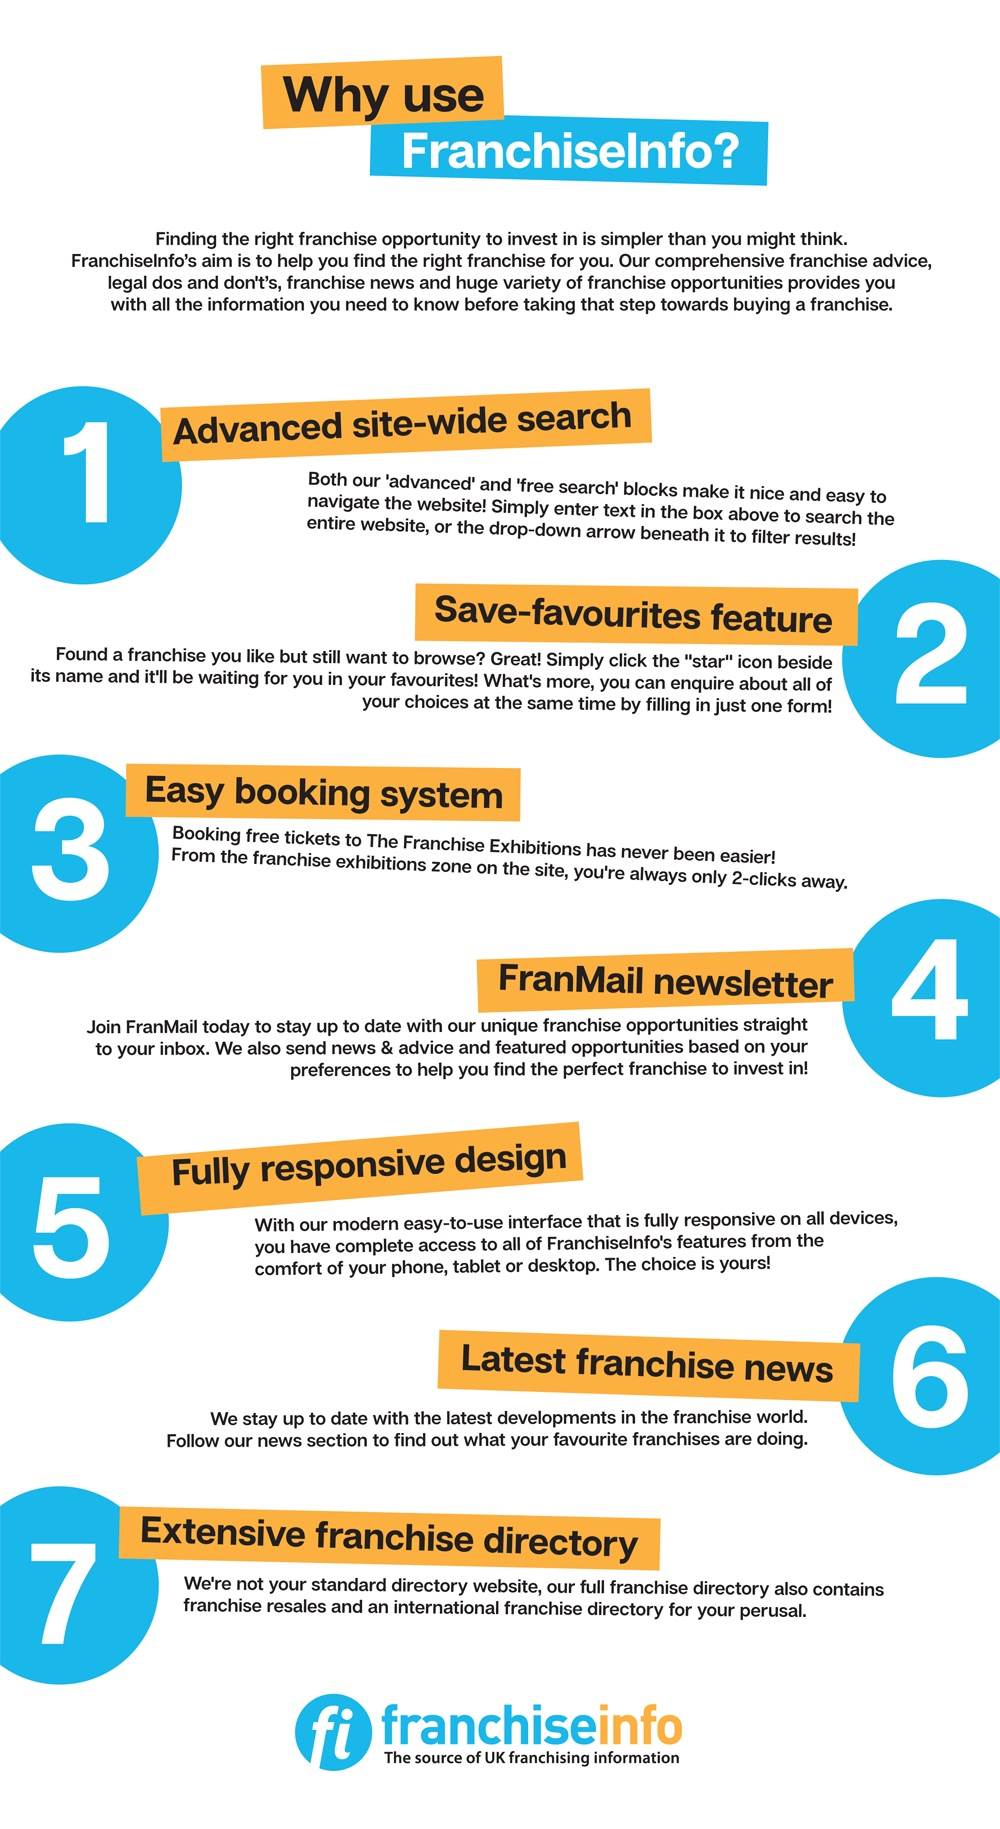 Why use FranchiseInfo? infographic